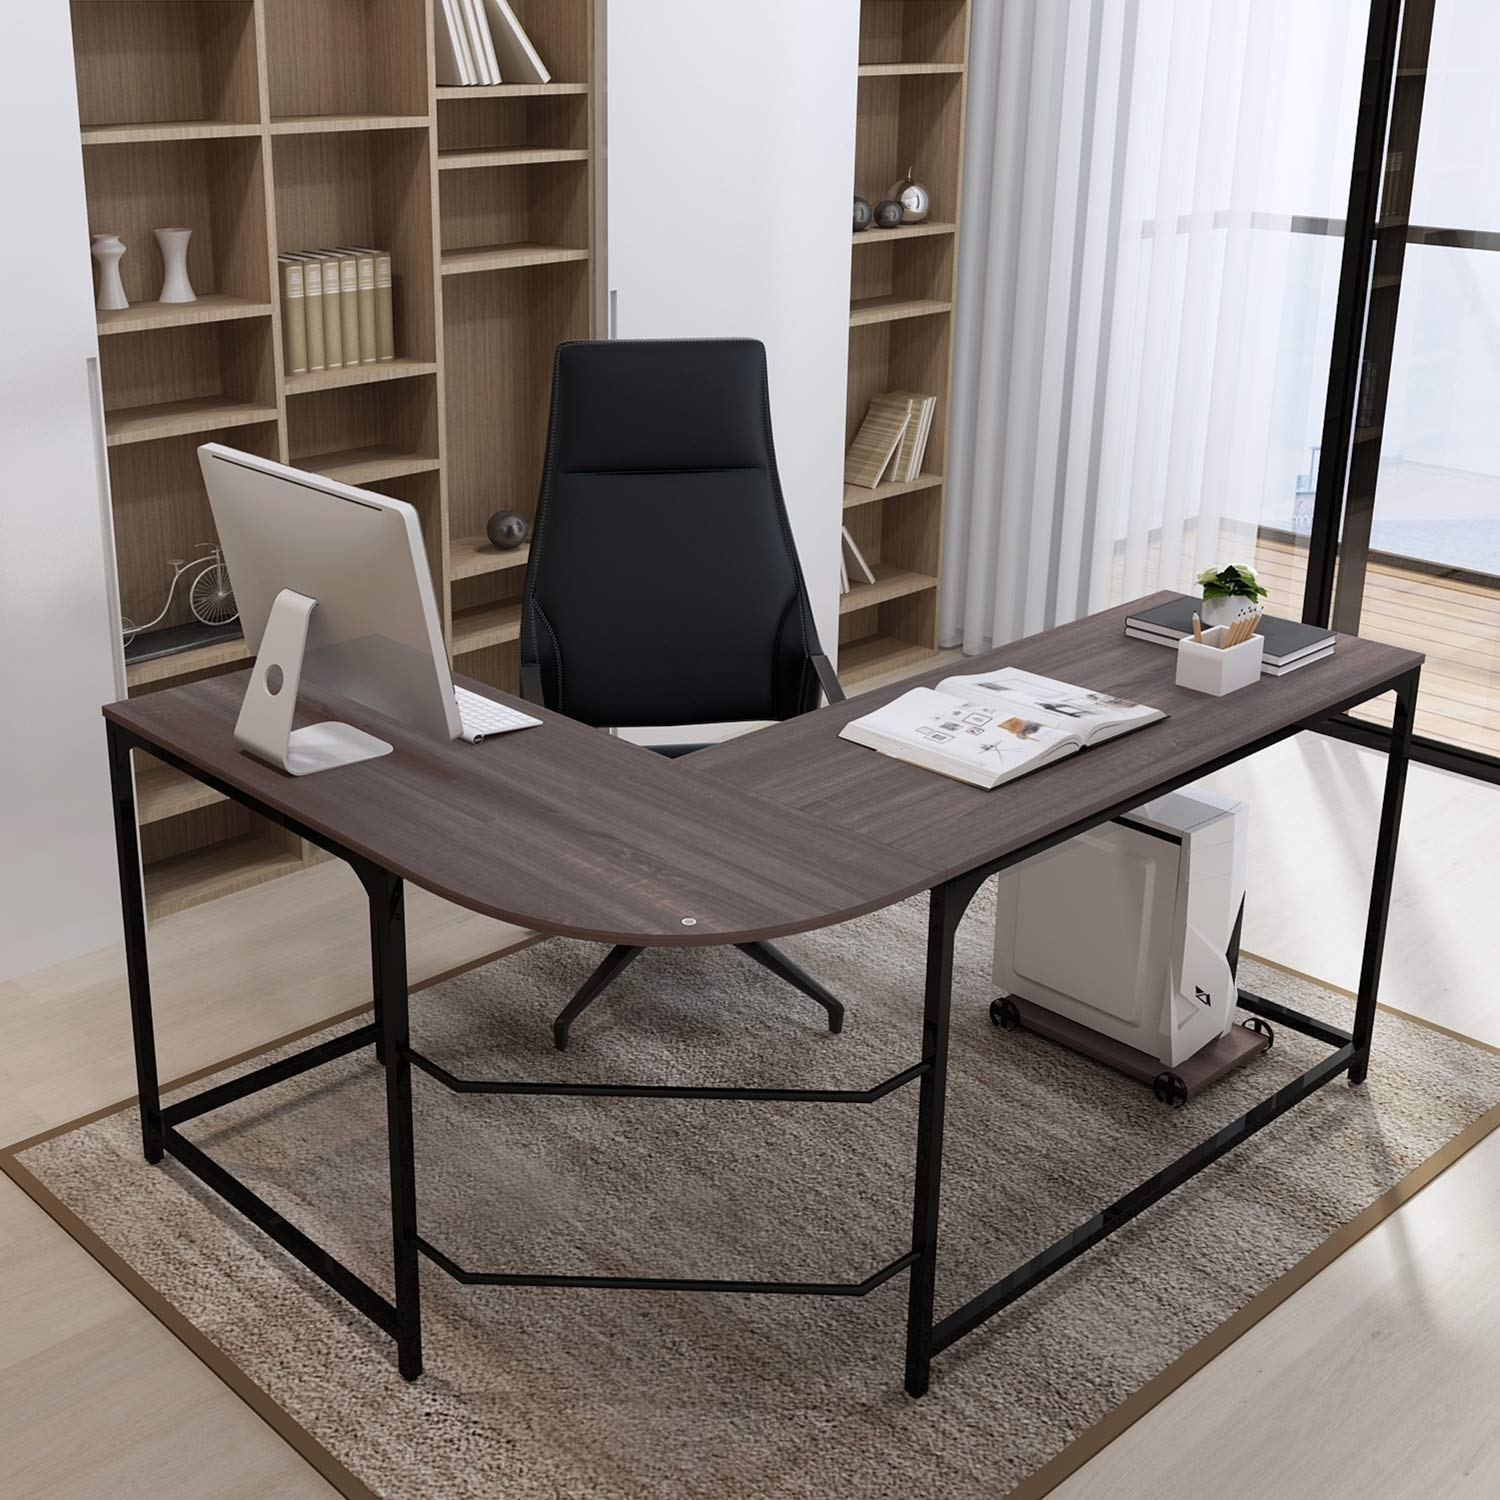 Teraves Reversible L-Shaped Desk Corner Gaming Computer Desk Office Workstation Modern Home Study Writing Wooden Table by Teraves